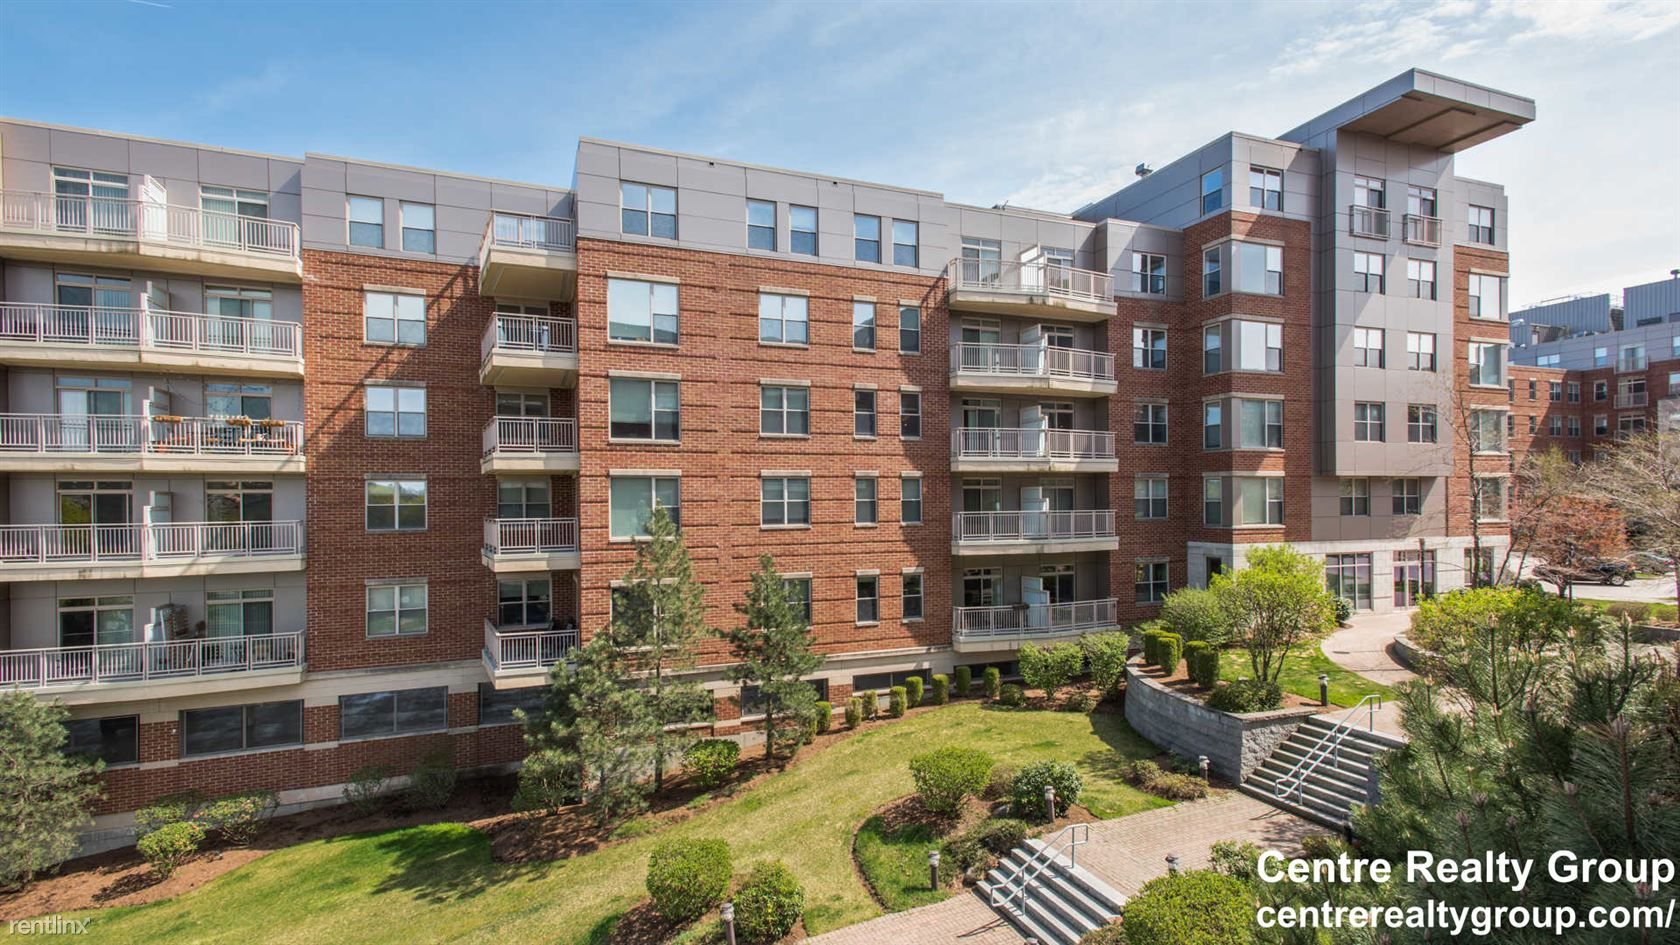 70 Hope Ave Apt 402, Waltham, MA - $3,070